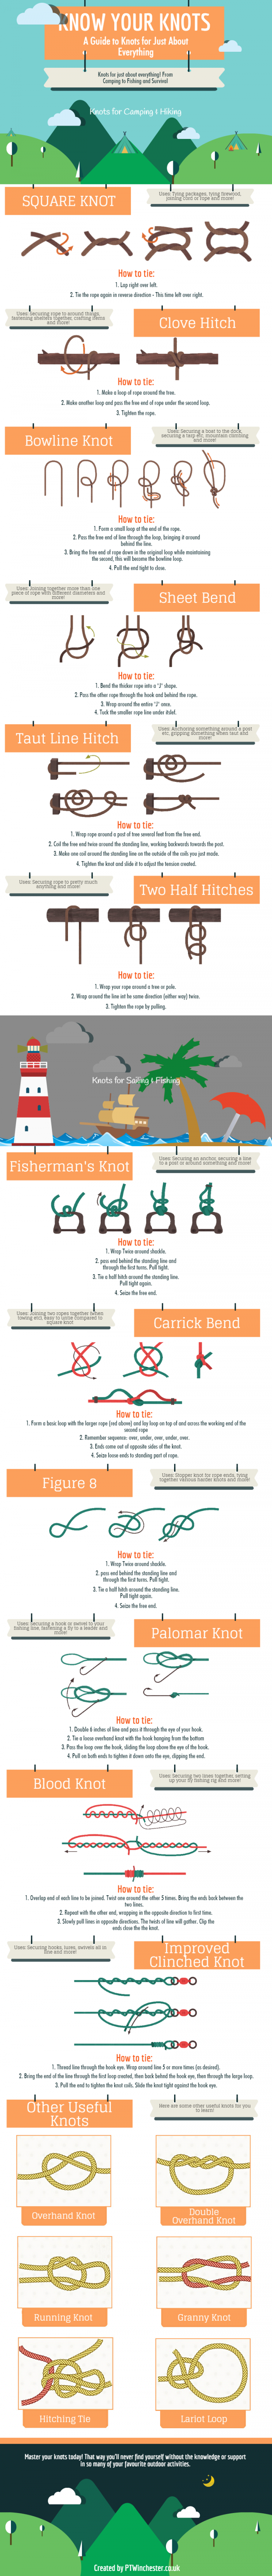 Top Knots Every Outdoorsman Needs to Know